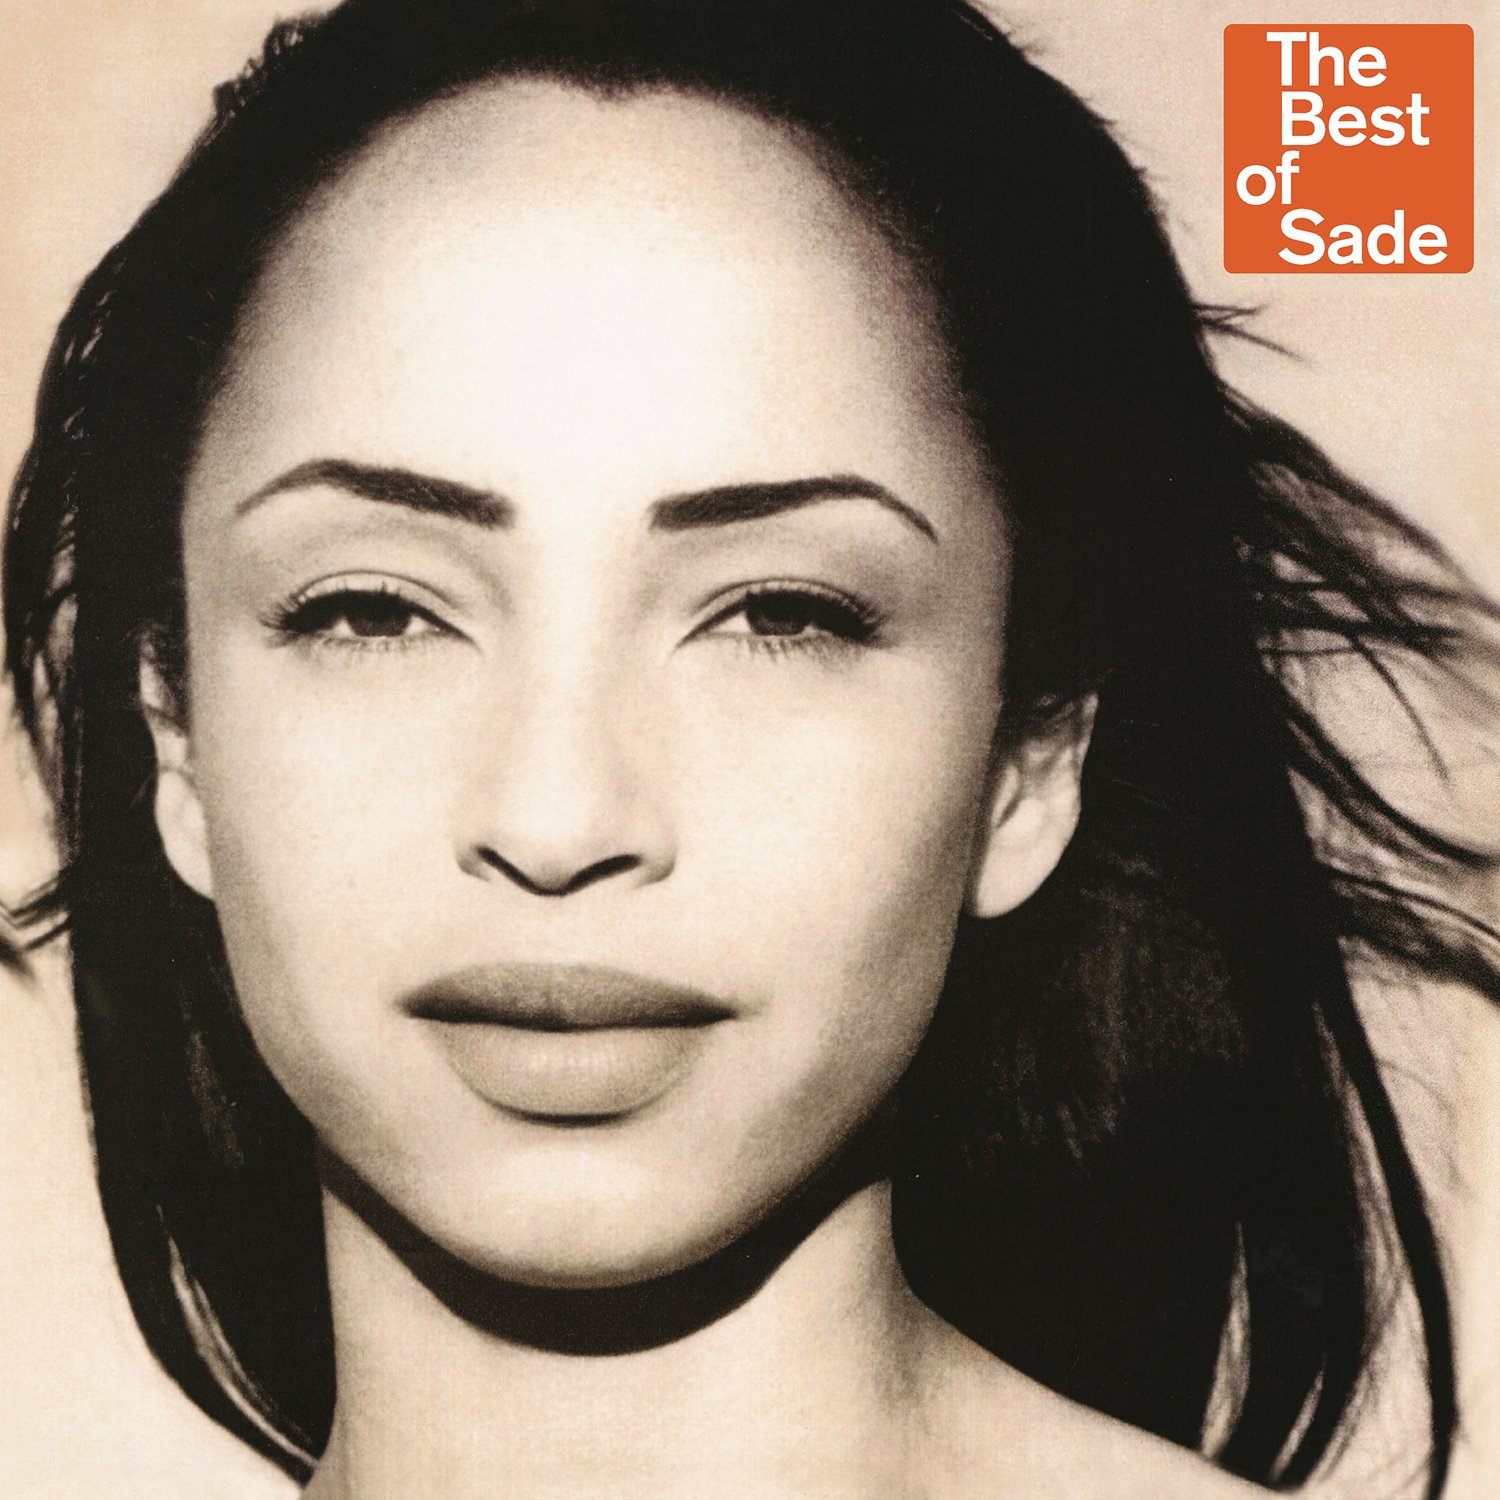 The Best of Sade by Legacy